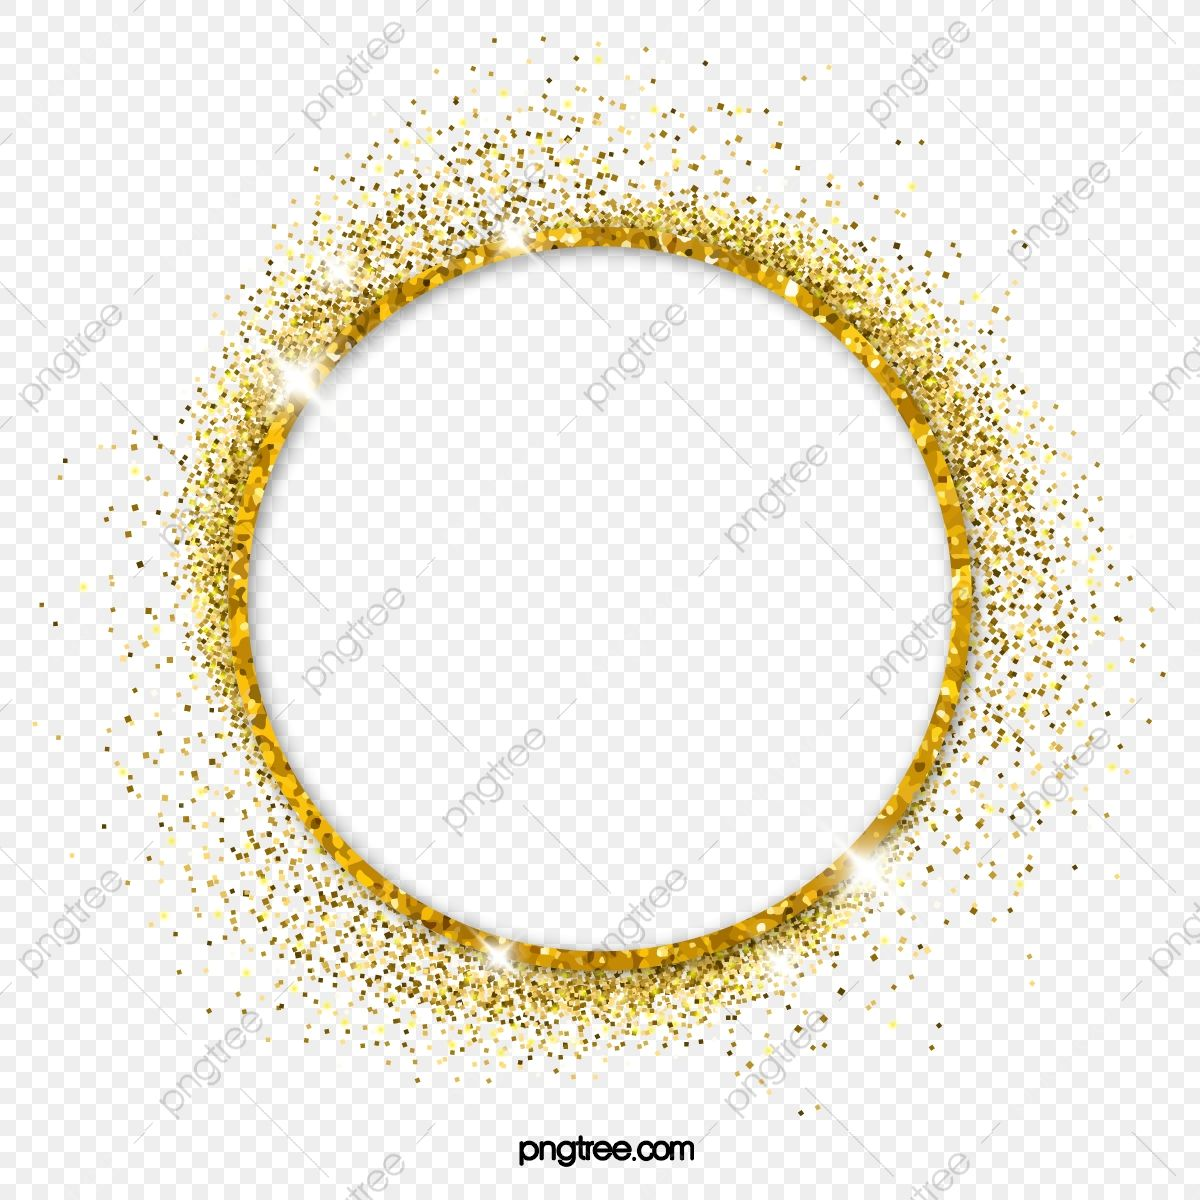 Golden Flash Circle Decoration Golden Golden Flash Flash Of Light Png And Vector With Transparent Background For Free Download Golden Circle Circle Frames Fire Image